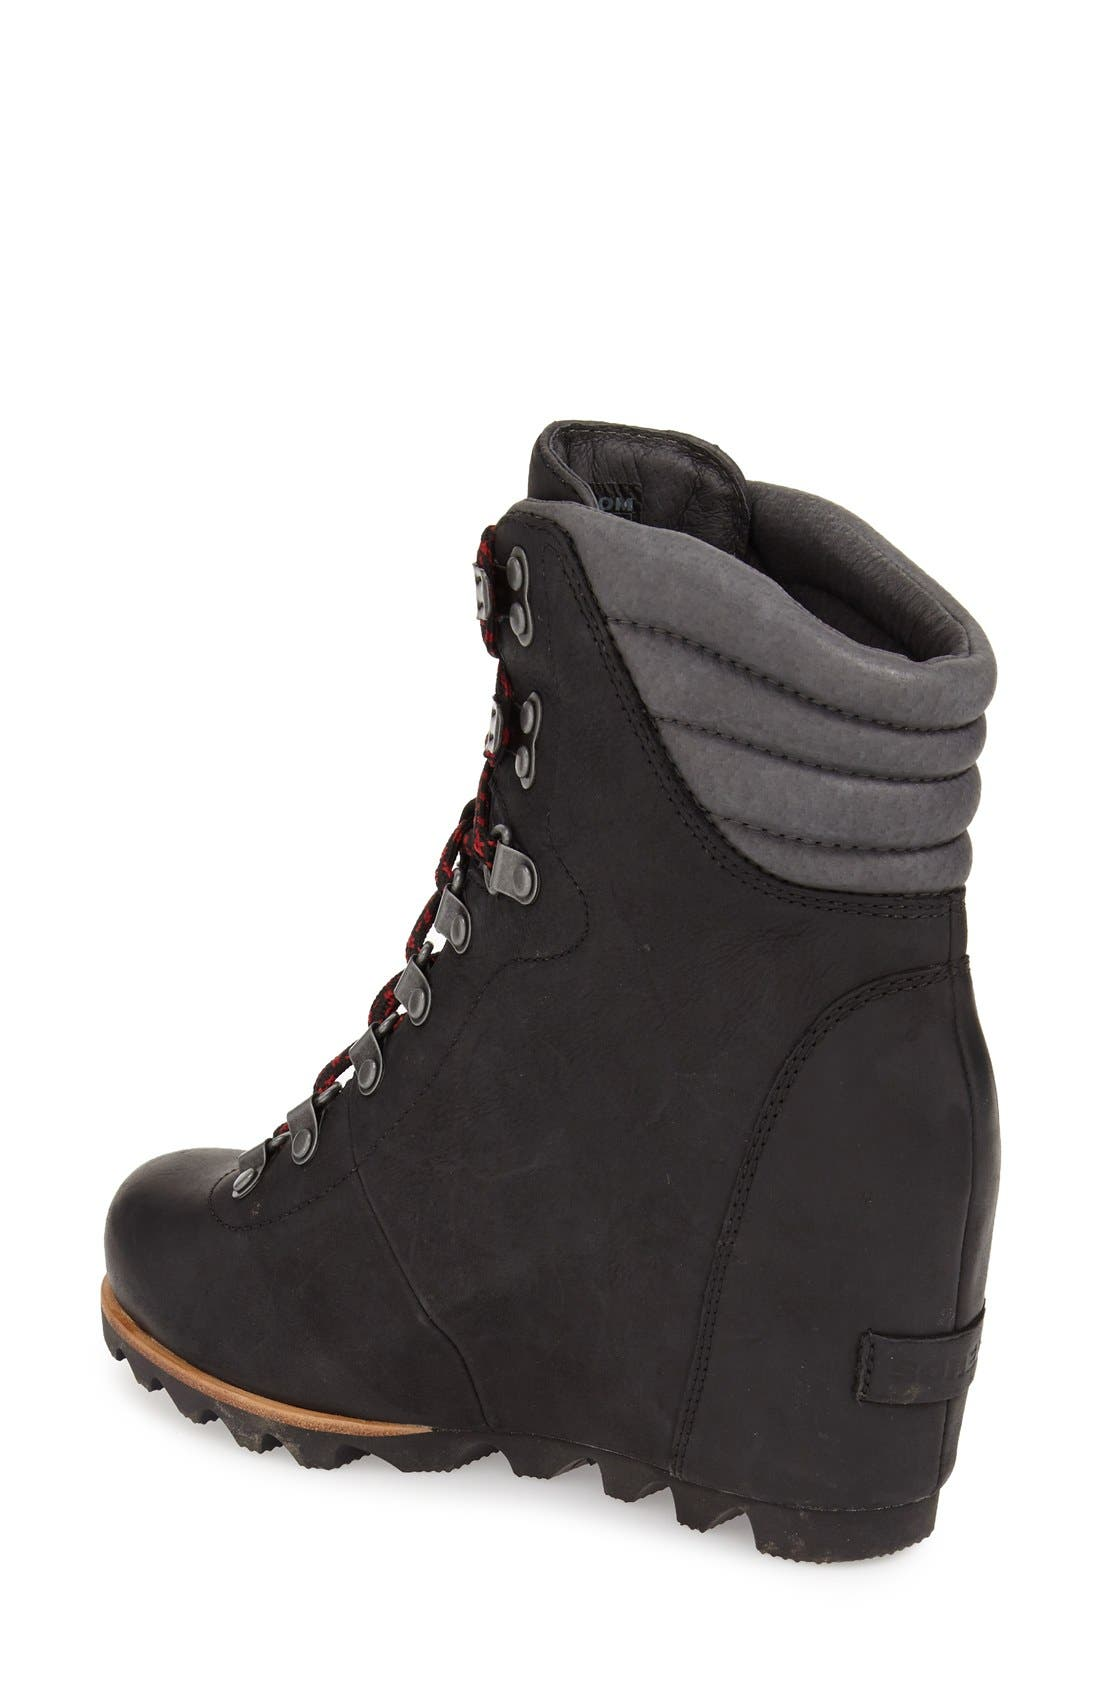 'Conquest' Waterproof Wedge Boot,                             Alternate thumbnail 3, color,                             010